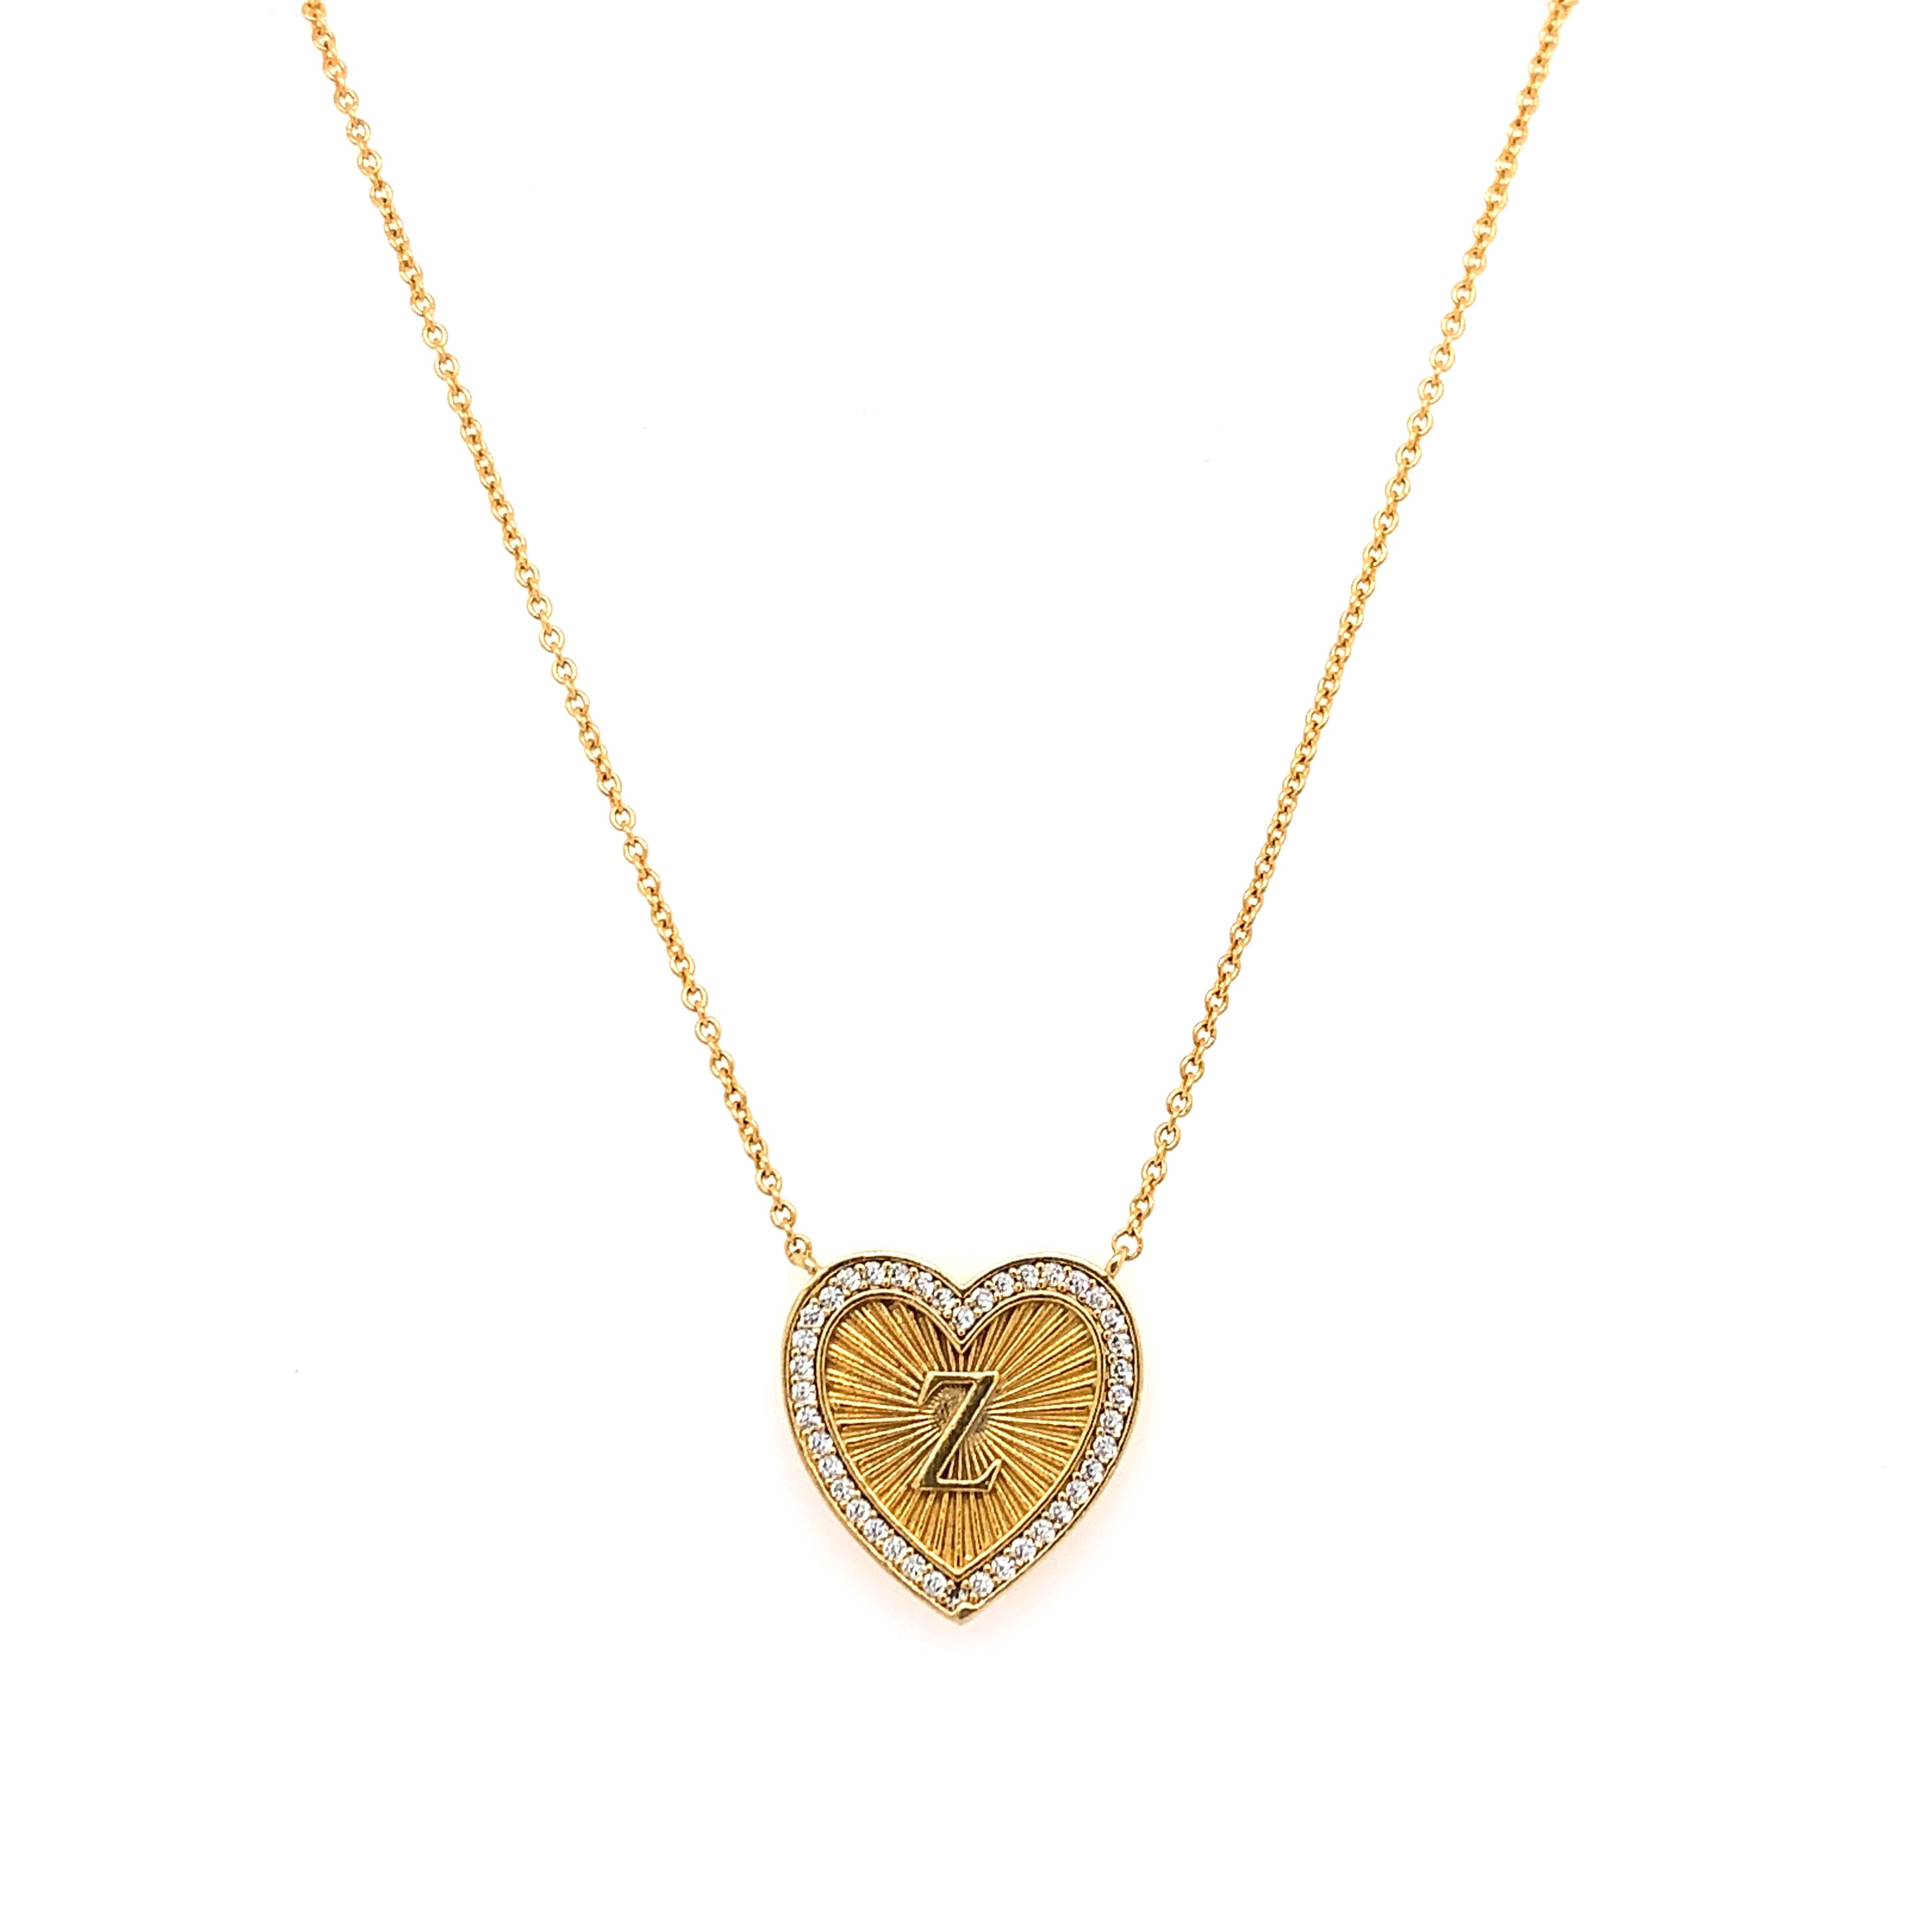 Vintage Inspired Heart Initial Necklace